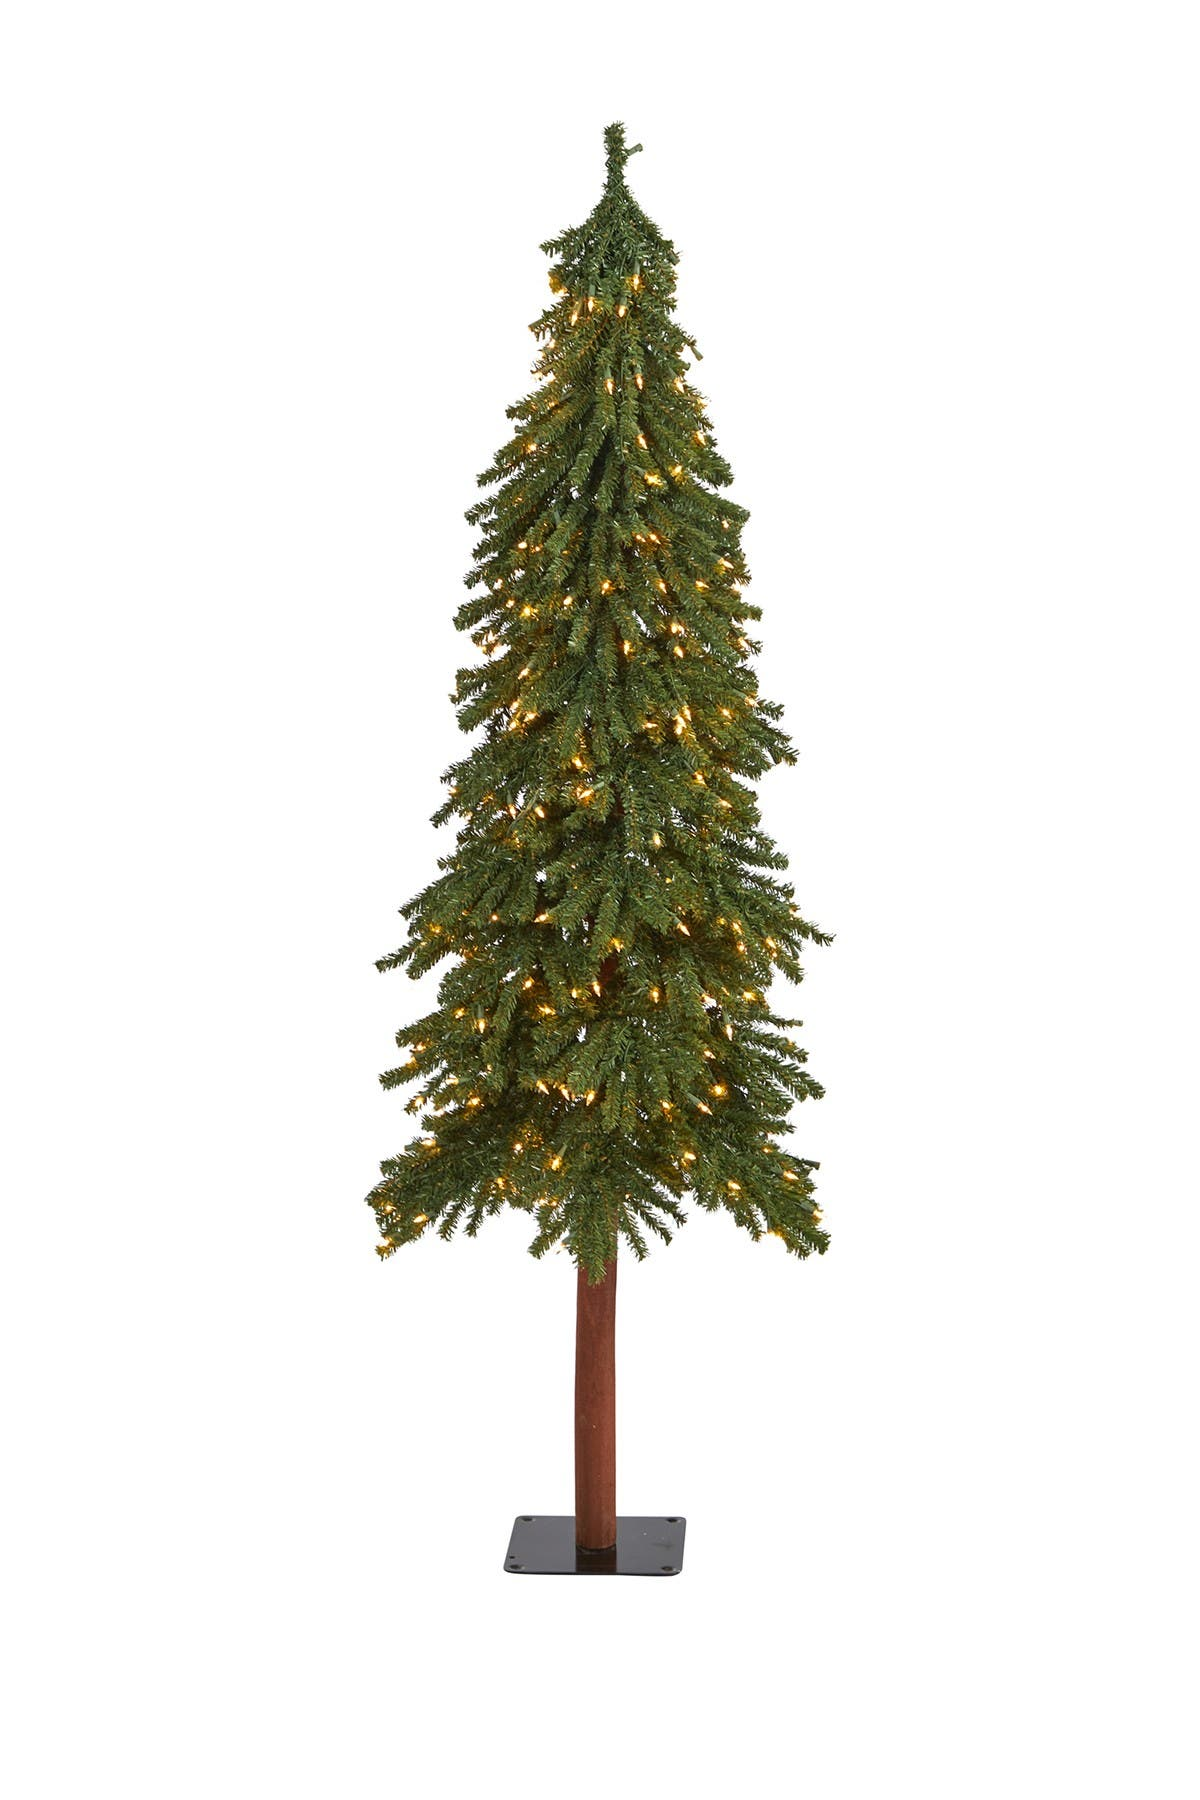 Image of NEARLY NATURAL 6ft. Grand Alpine Artificial Christmas Tree with 300 Clear Lights on Natural Trunk